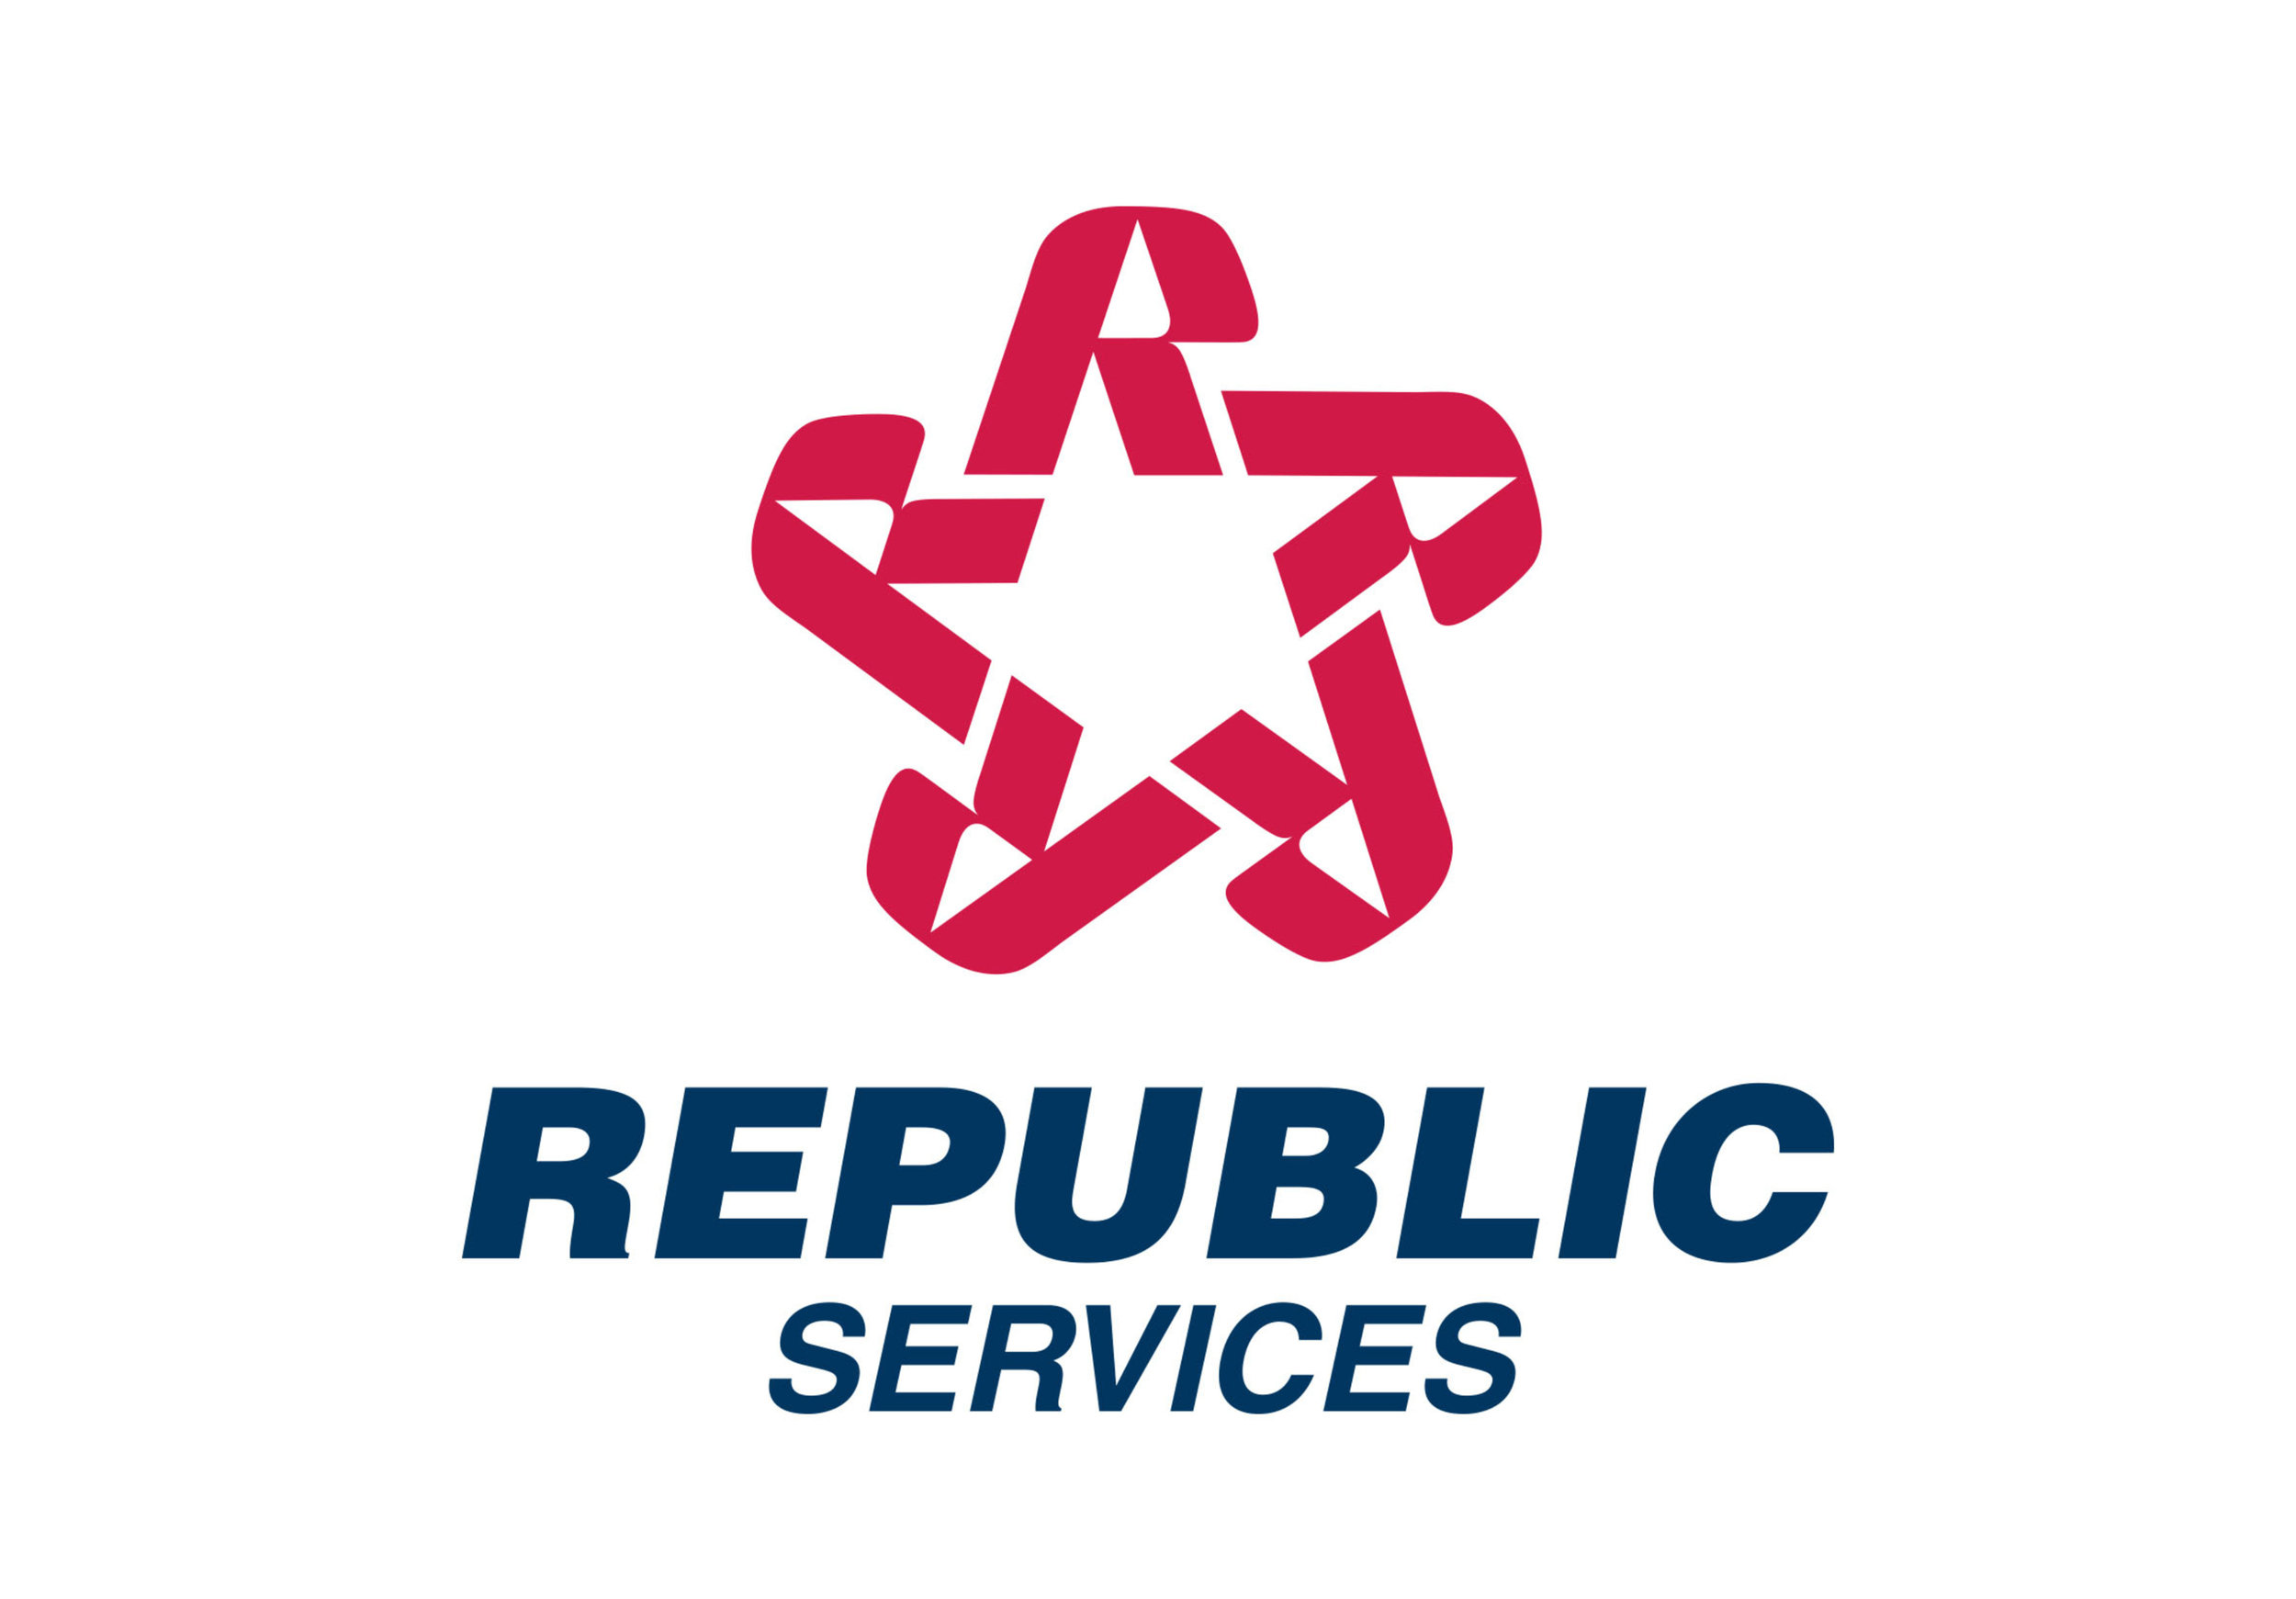 Republic Services - Bringing you dependable solutions for your recycling and waste challenges.